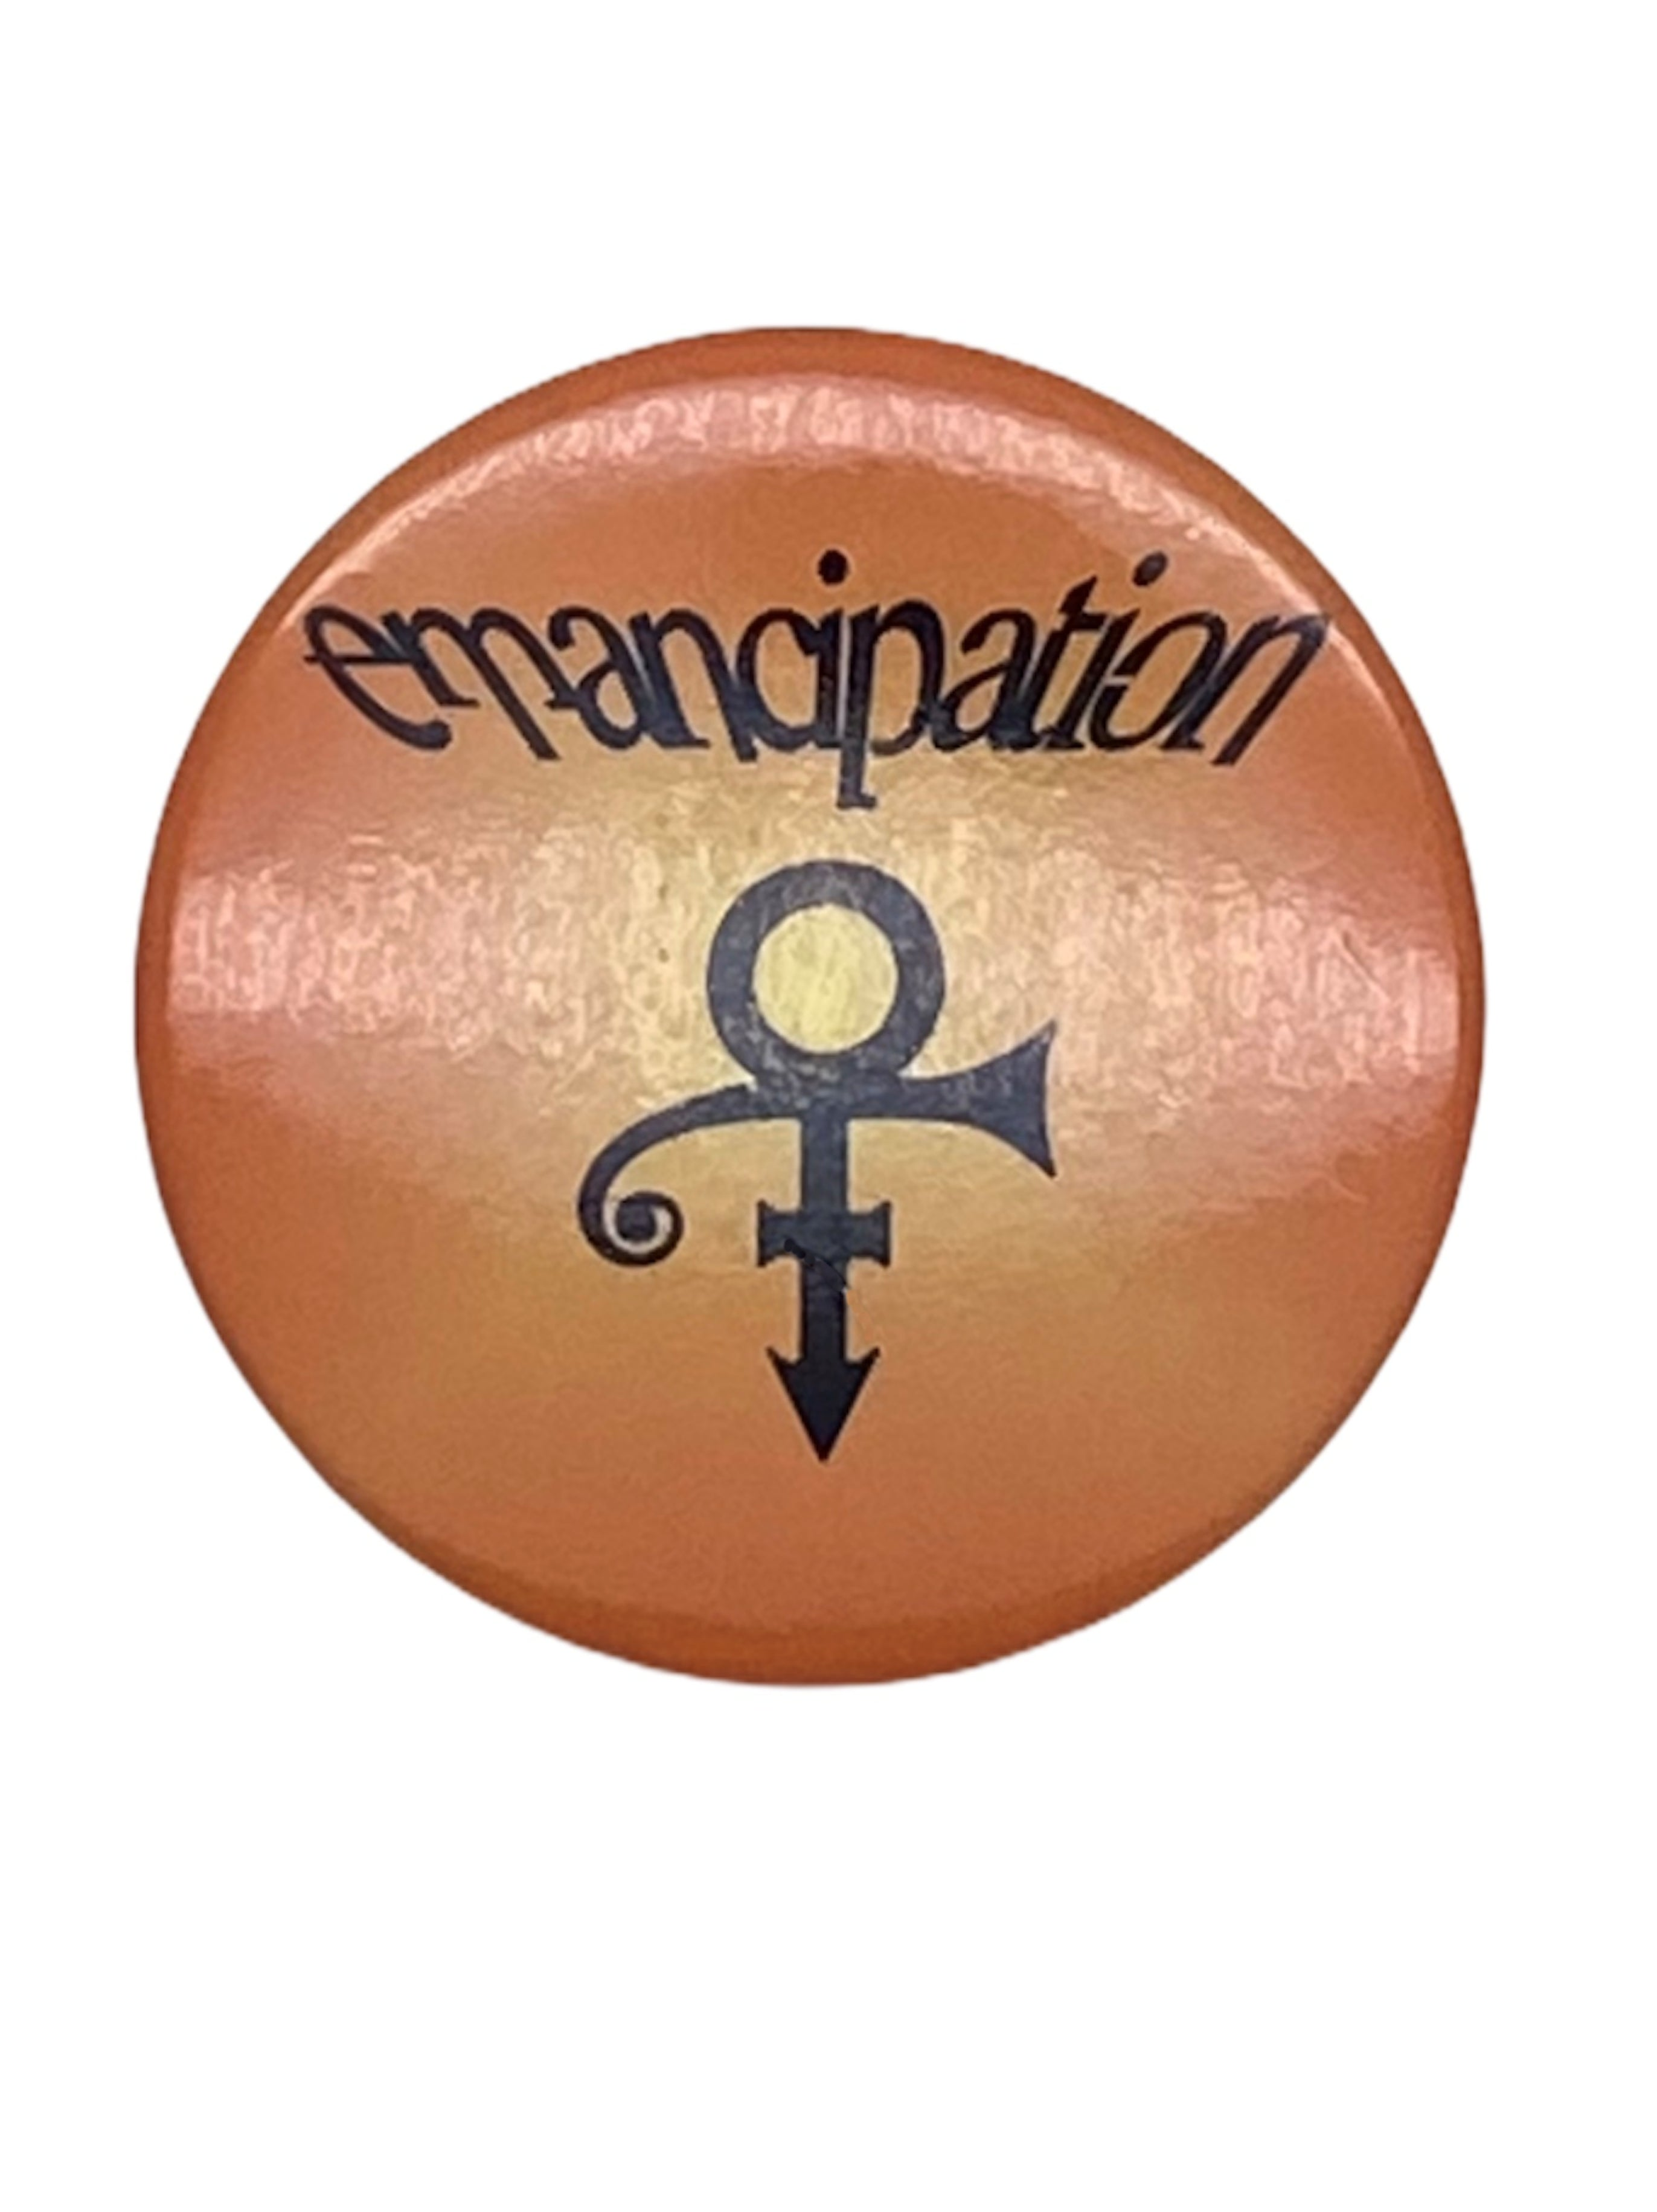 NPG Store Official Merchandise Large Badge Emancipation Prince